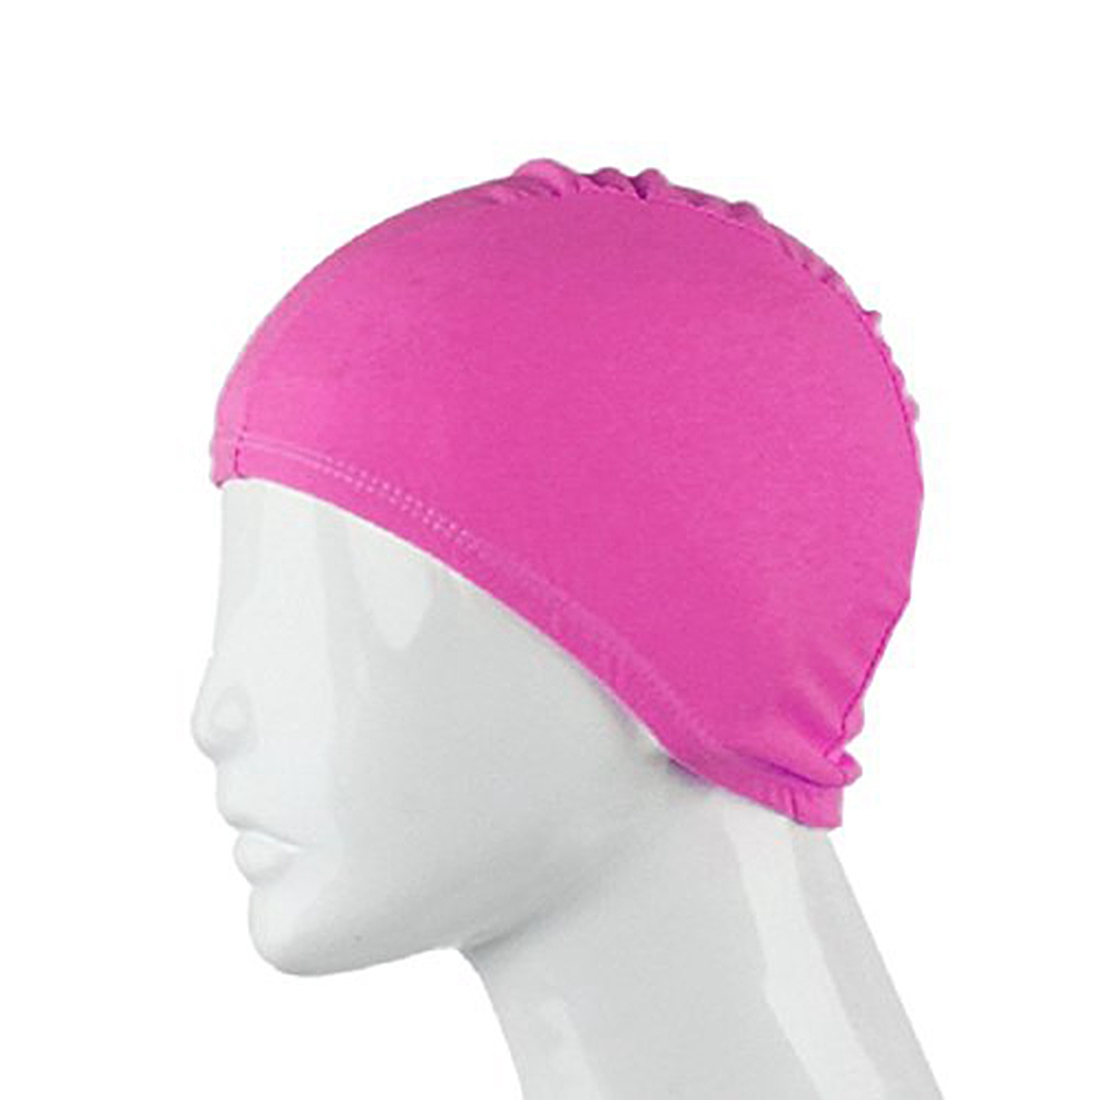 Adult Swimming Hats Unisex Outdoor Sports Stretch Cap Islamabad